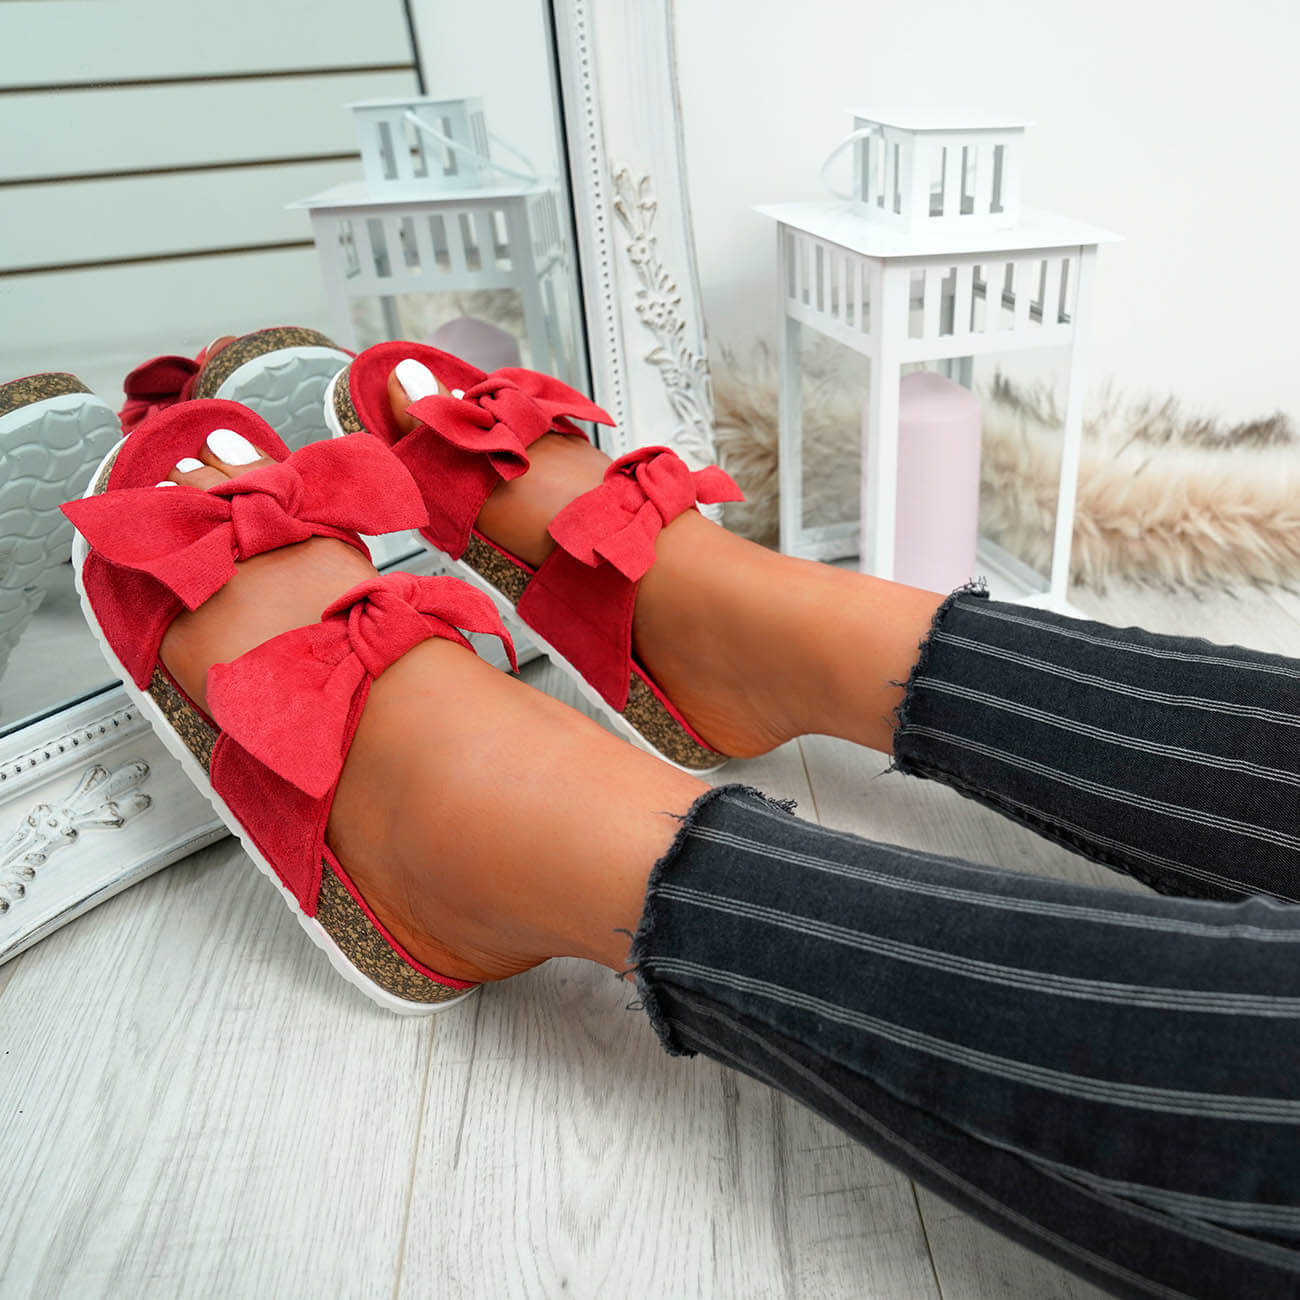 WOMENS-LADIES-PEEP-TOE-SLIP-ON-DOUBLE-BOW-FLAT-SANDALS-PARTY-CLUB-SUMMER-SHOES thumbnail 42